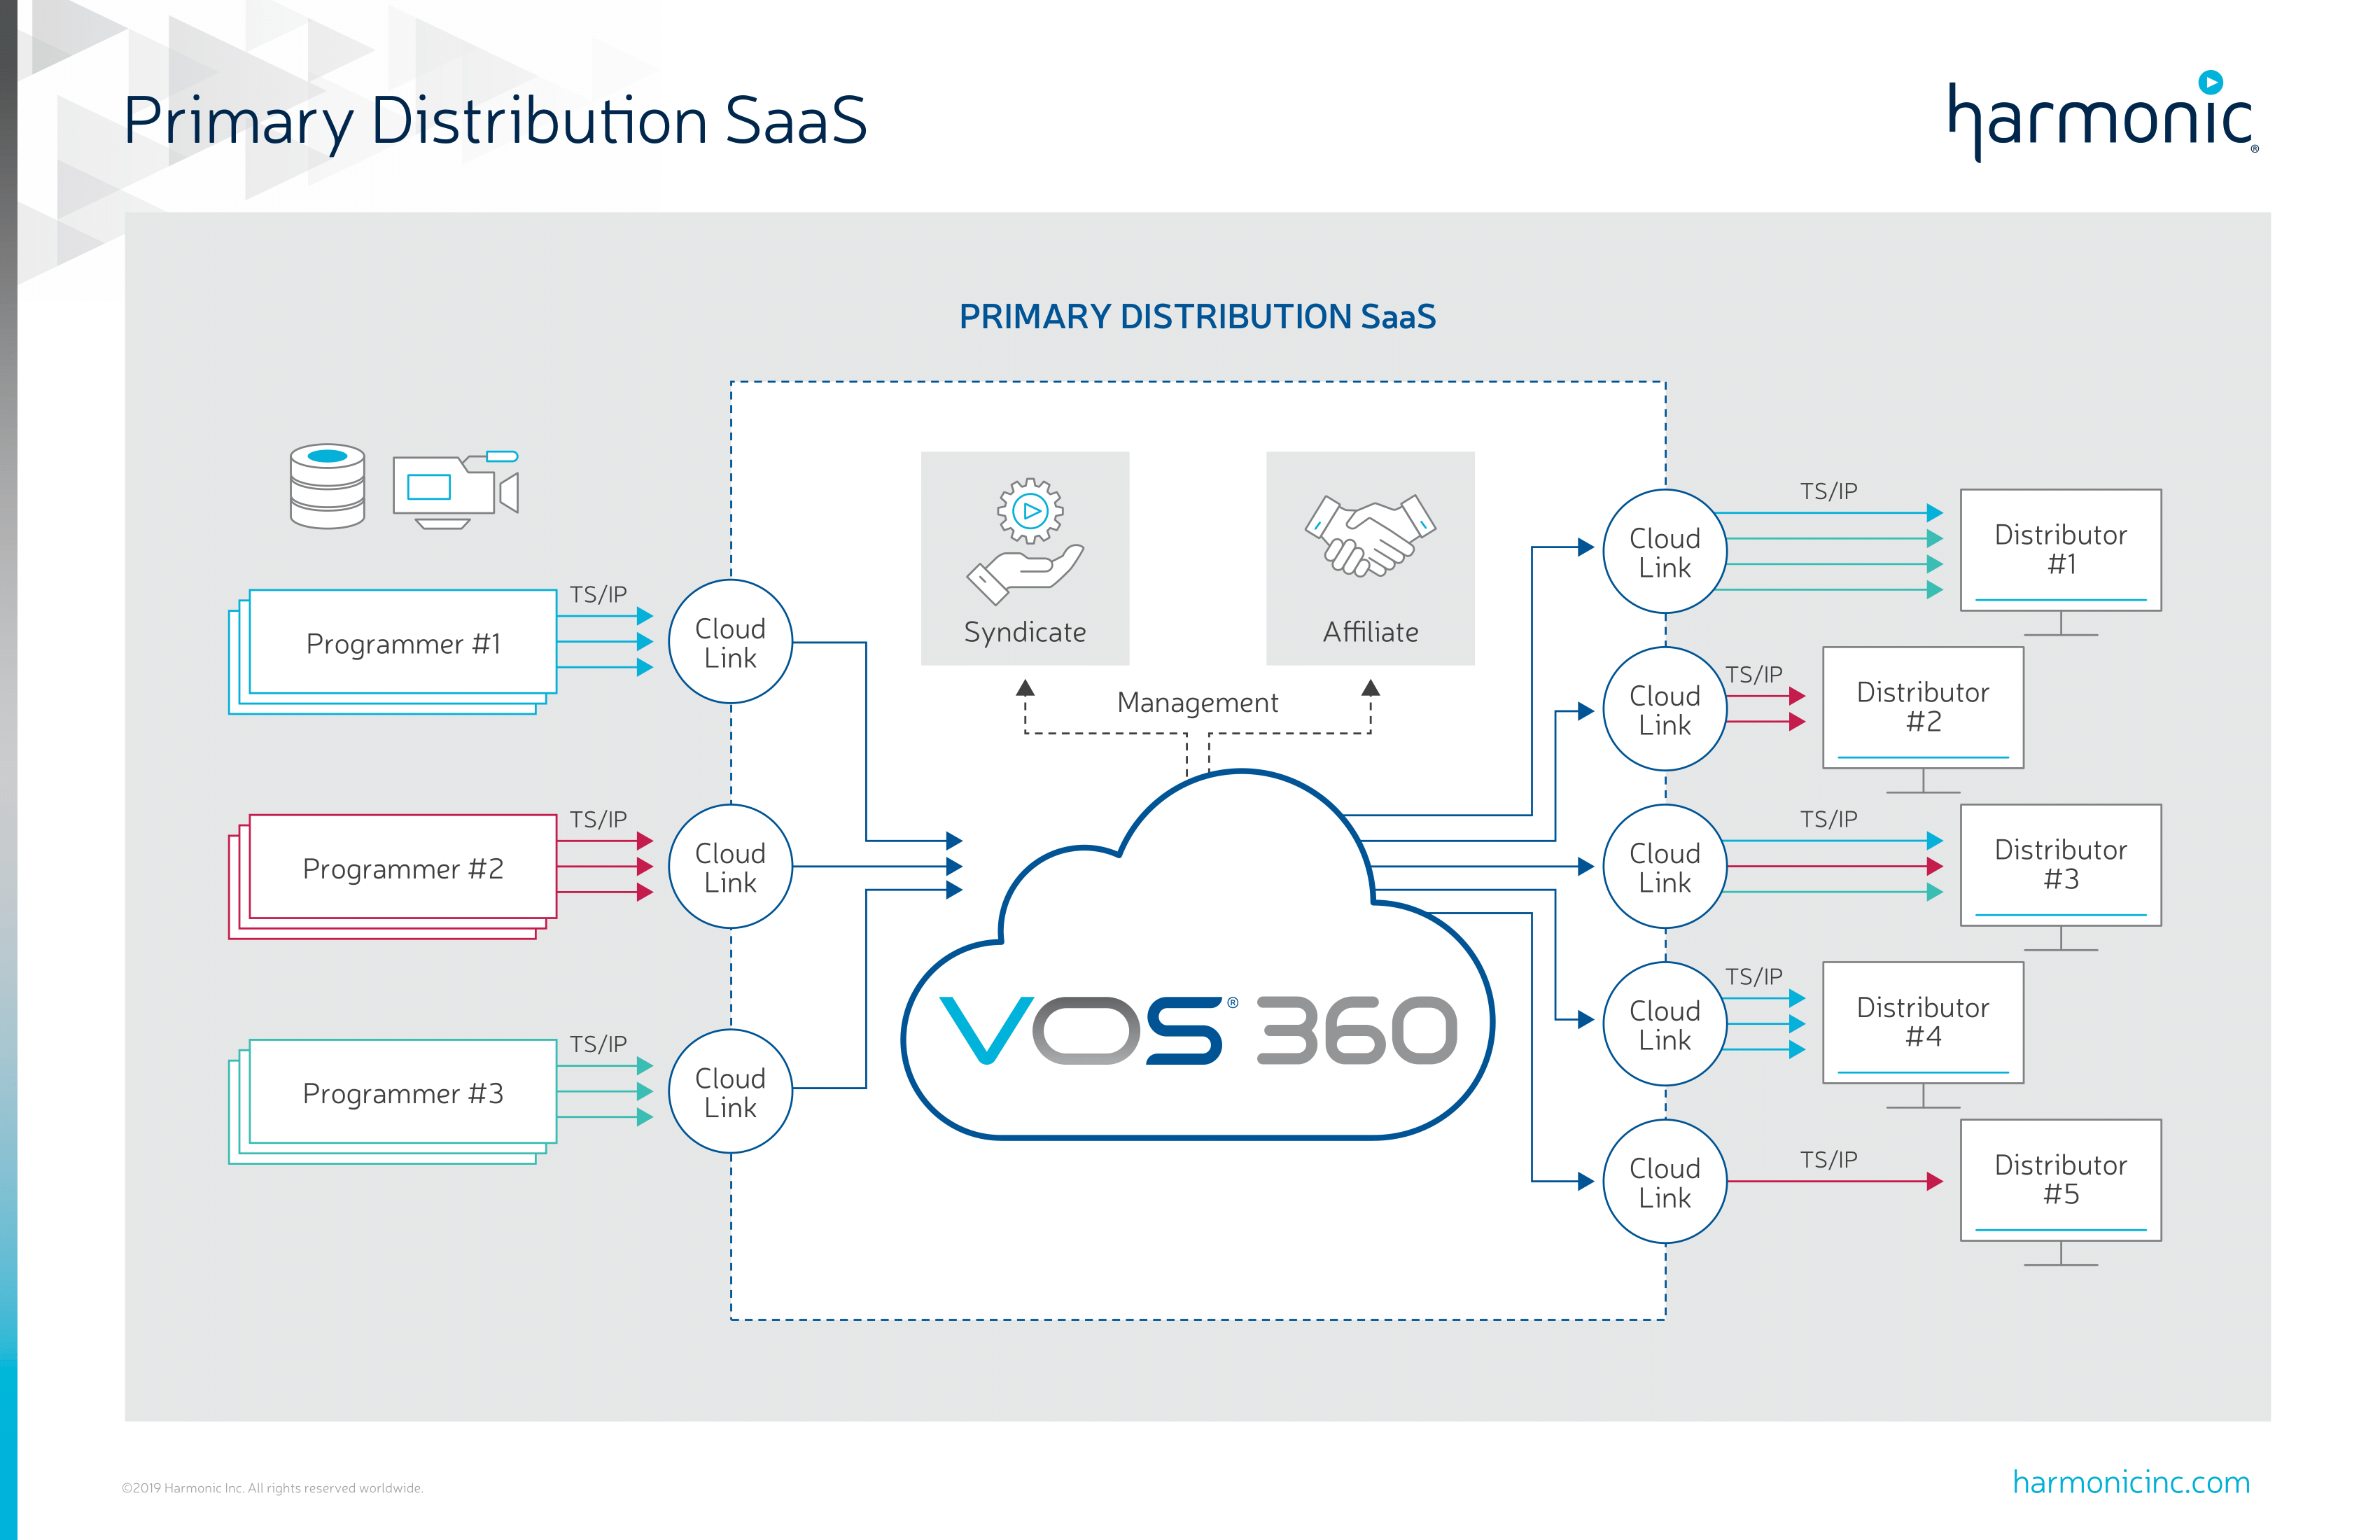 Primary Distribution SaaS